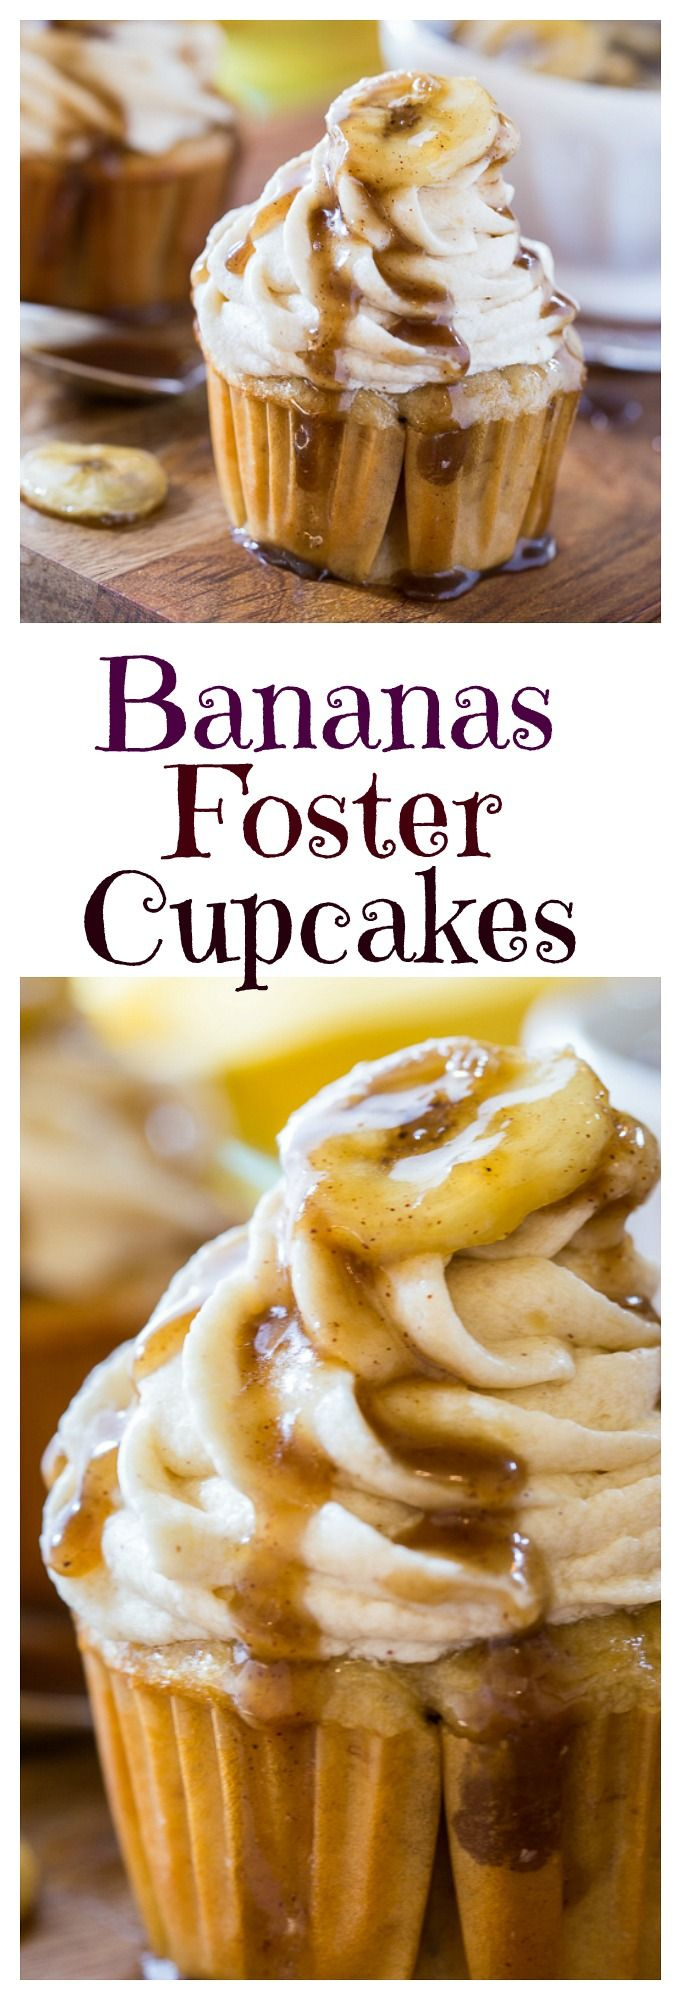 25+ best ideas about Banana Foster Recipe on Pinterest ...